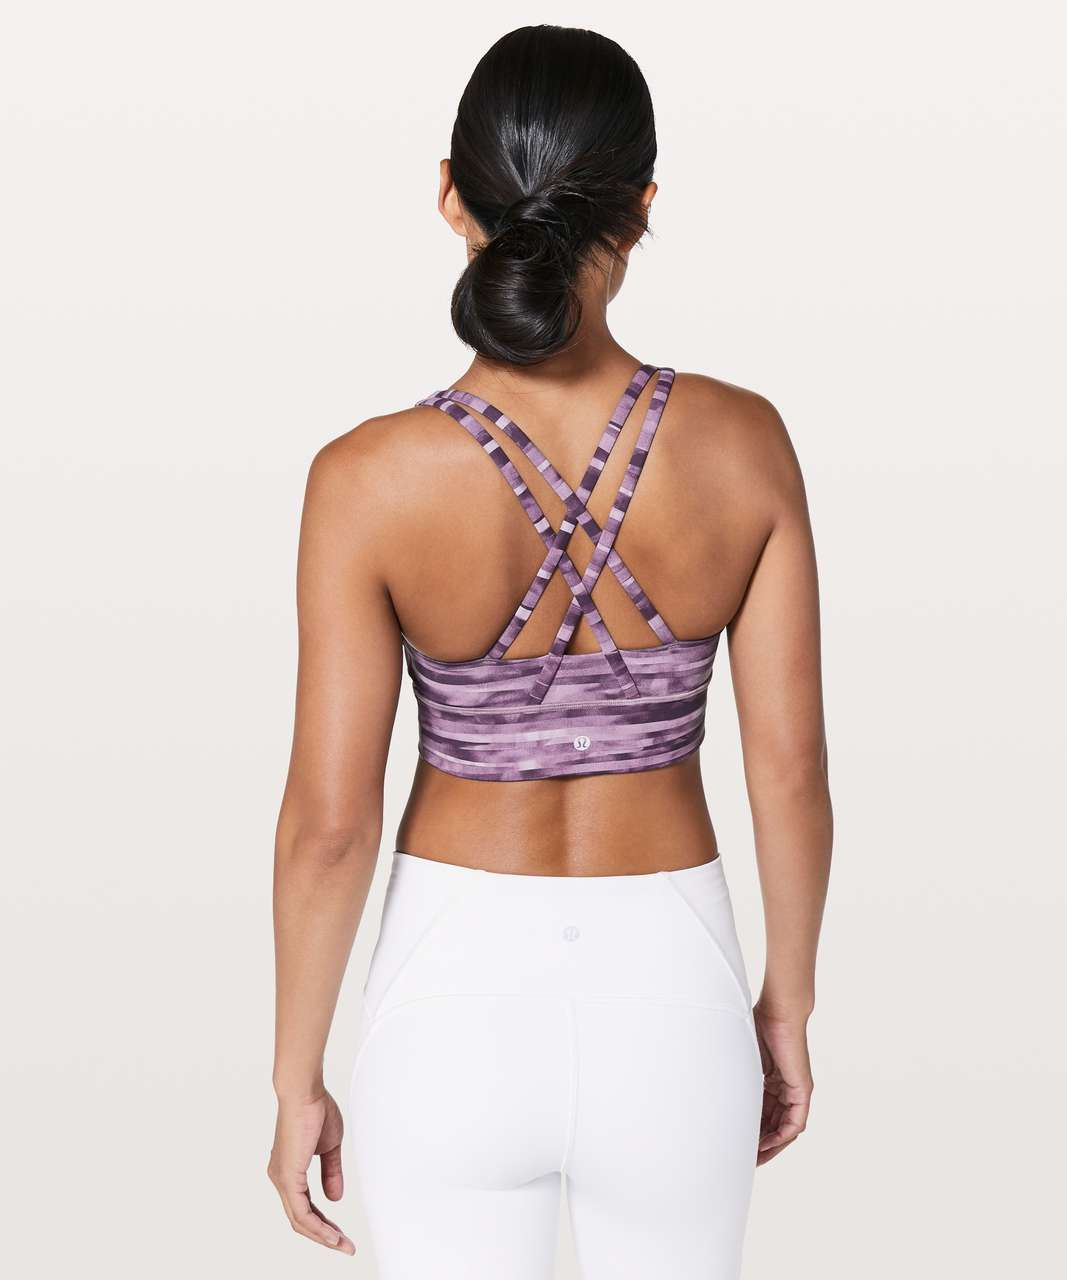 Lululemon Energy Bra *Long Line - Shadowed Smoked Mullberry